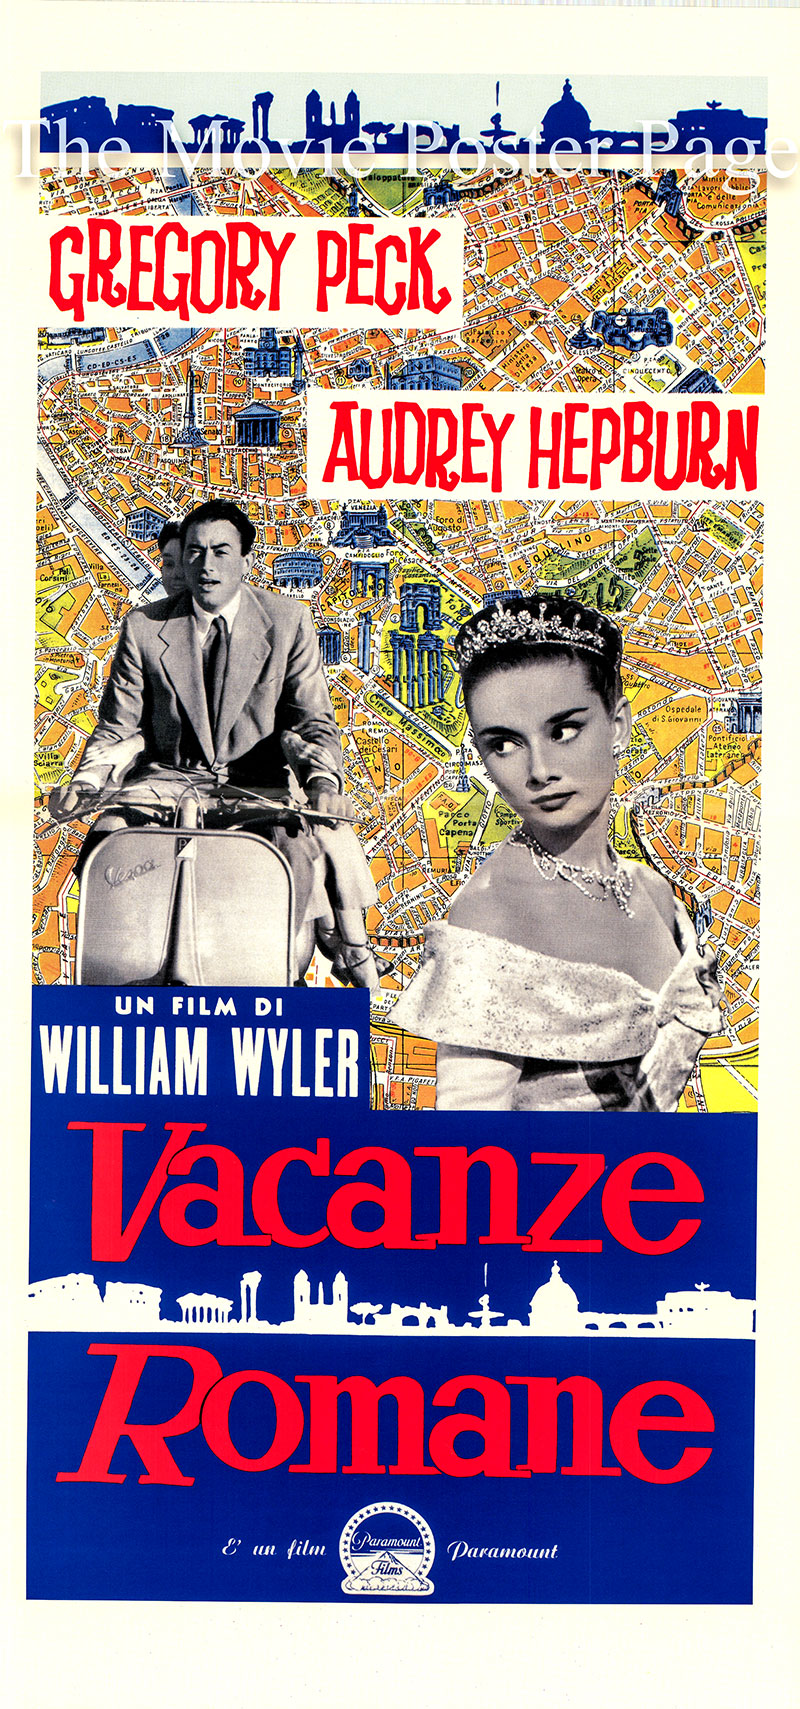 Pictured is an Italian locandina promotional poster for a 1990s rerelease of the 1953 William Wyler film Roman Holiday starring Audrey Hepburn and Gregory Peck.